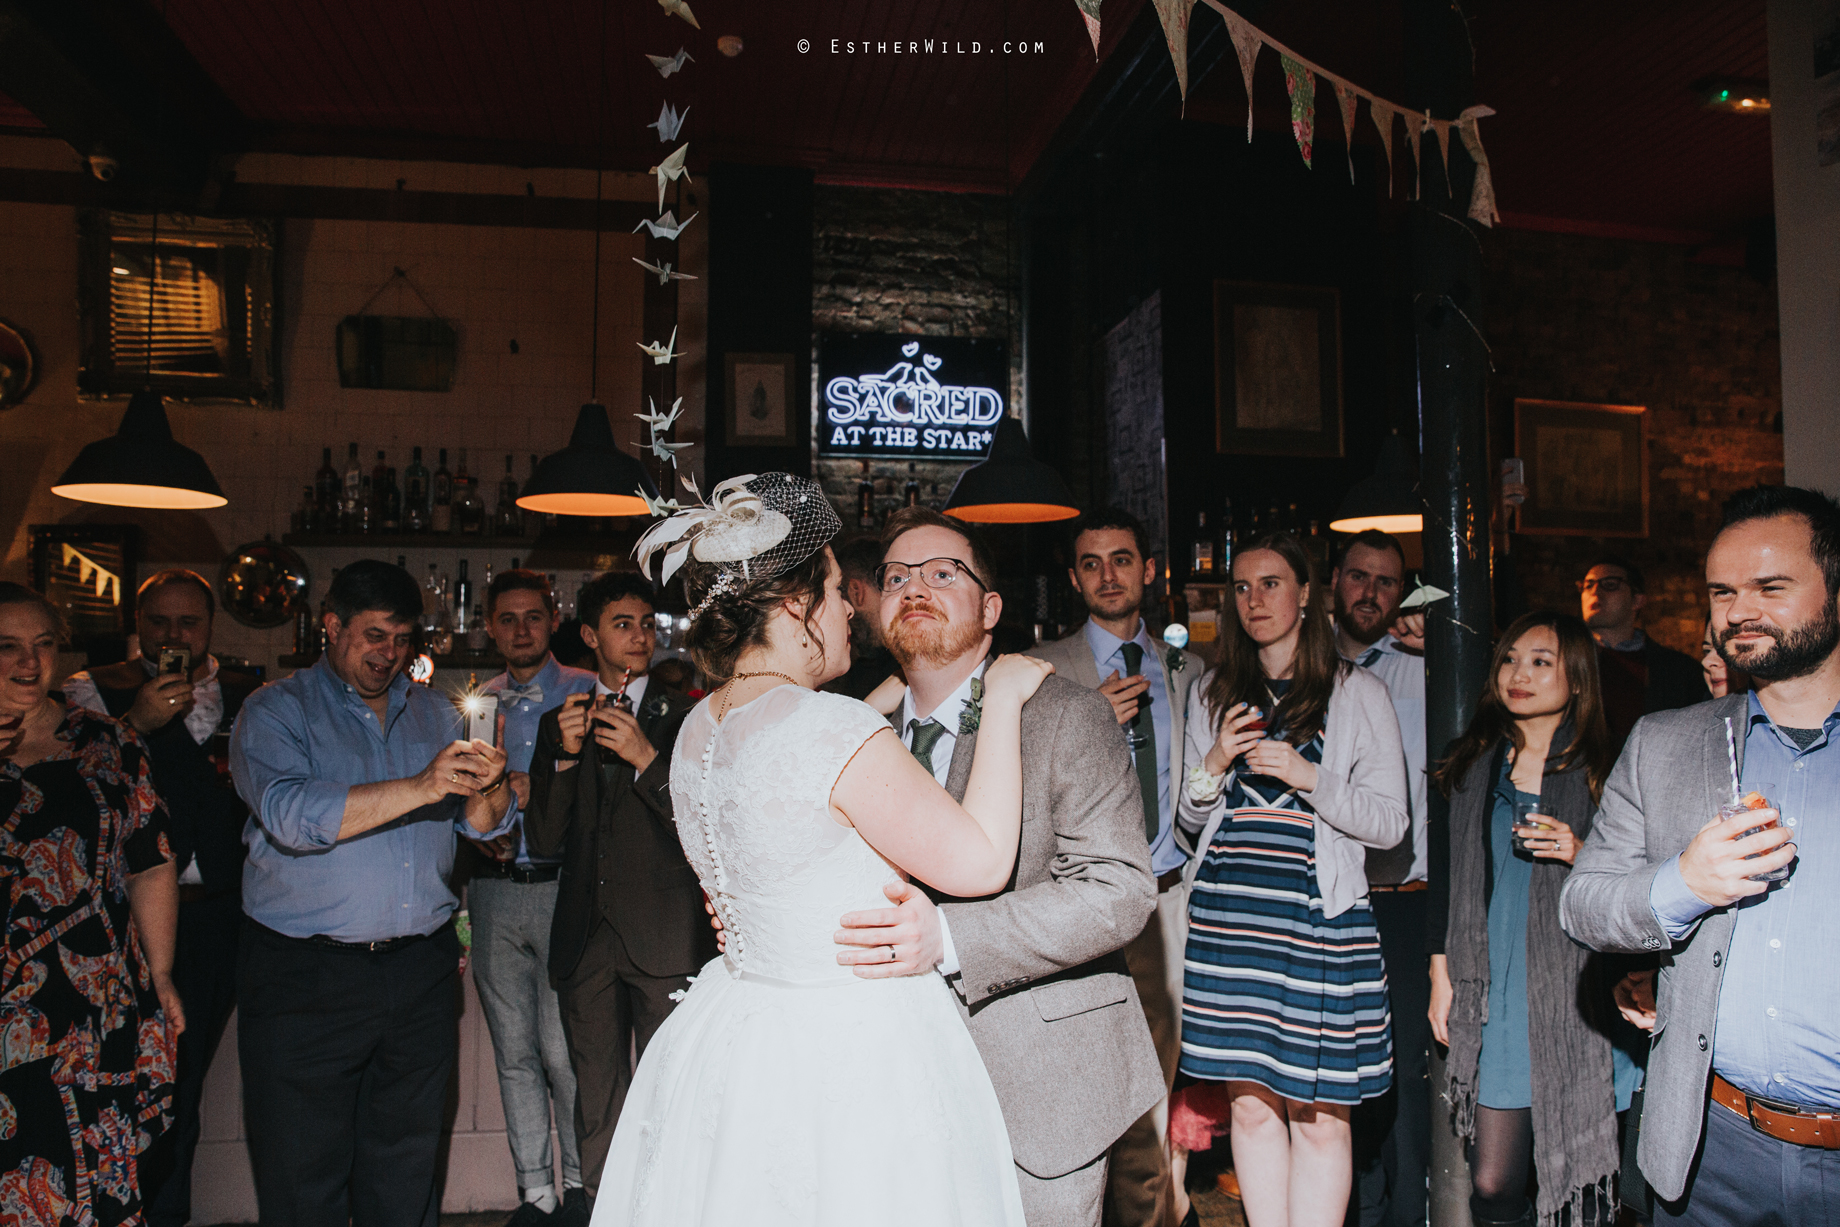 Islington_Town_Hall_Assembly_Hall_Council_Chamber_The_Star_Pub_London_Sacred_Wedding_Copyright_Esther_Wild_Photographer_IMG_2174.jpg